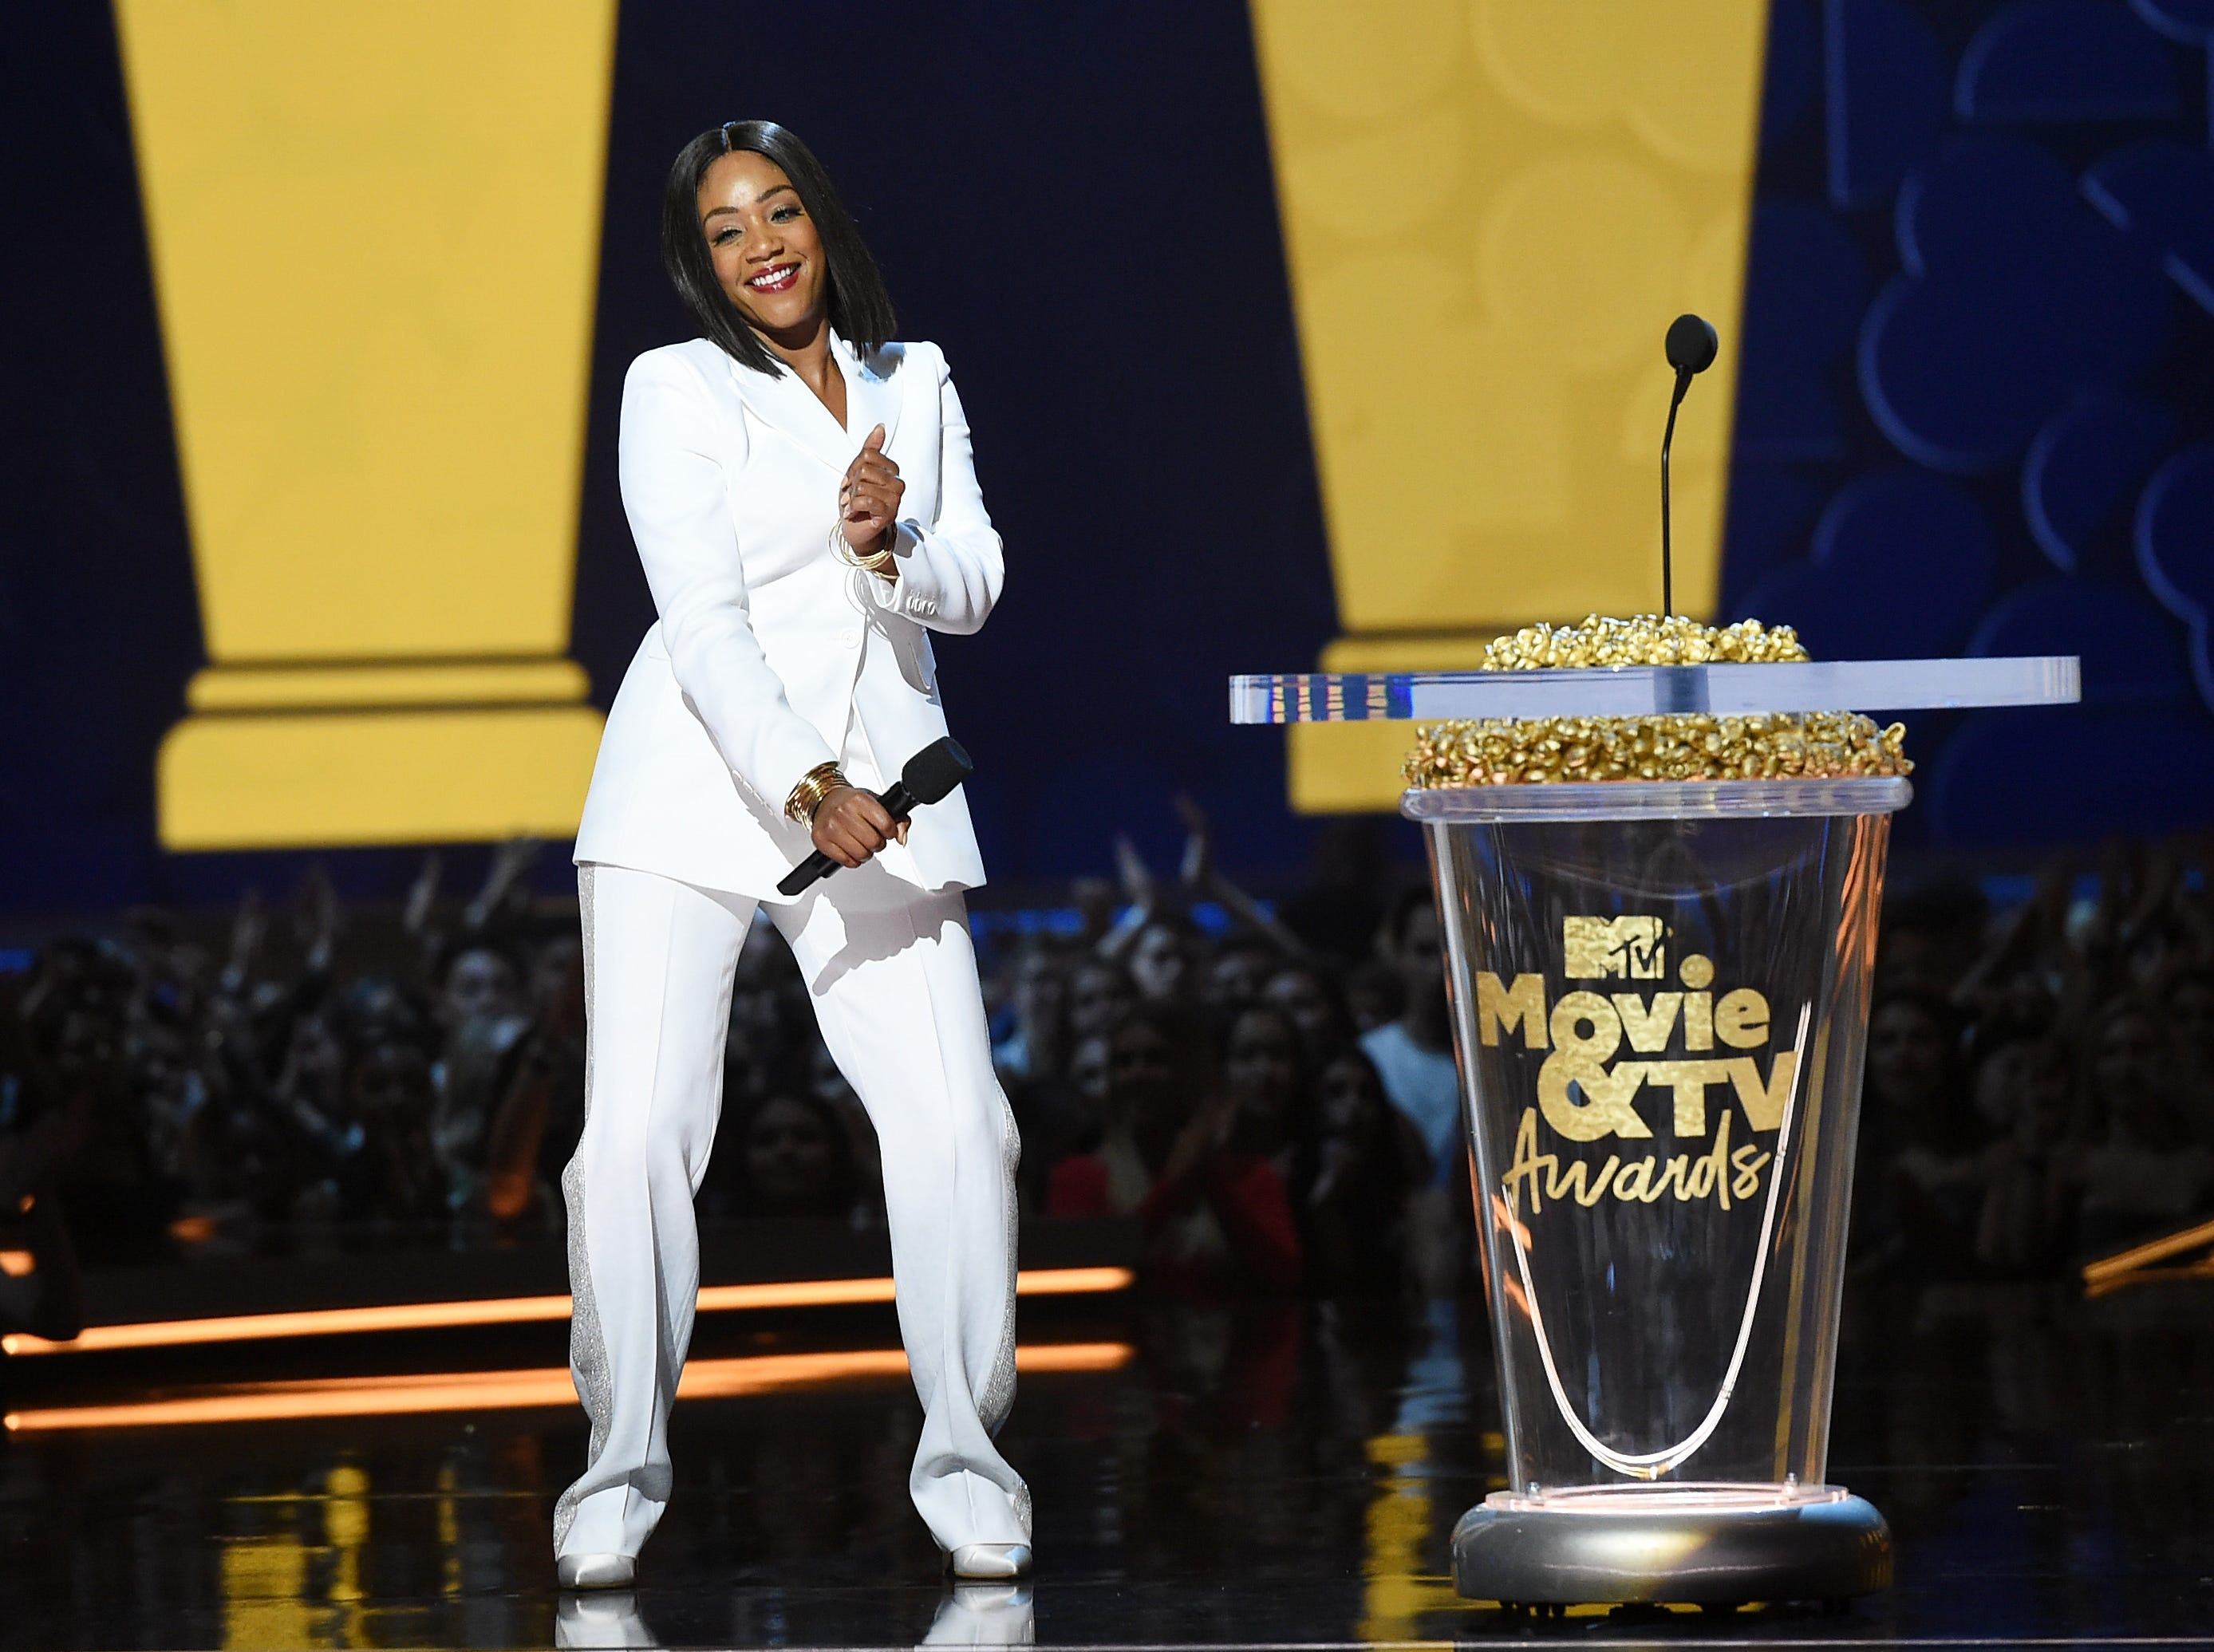 SANTA MONICA, CA - JUNE 16:  Host Tiffany Haddish speaks onstage during the 2018 MTV Movie And TV Awards at Barker Hangar on June 16, 2018 in Santa Monica, California.  (Photo by Kevin Winter/Getty Images for MTV) ORG XMIT: 775176642 ORIG FILE ID: 978197422